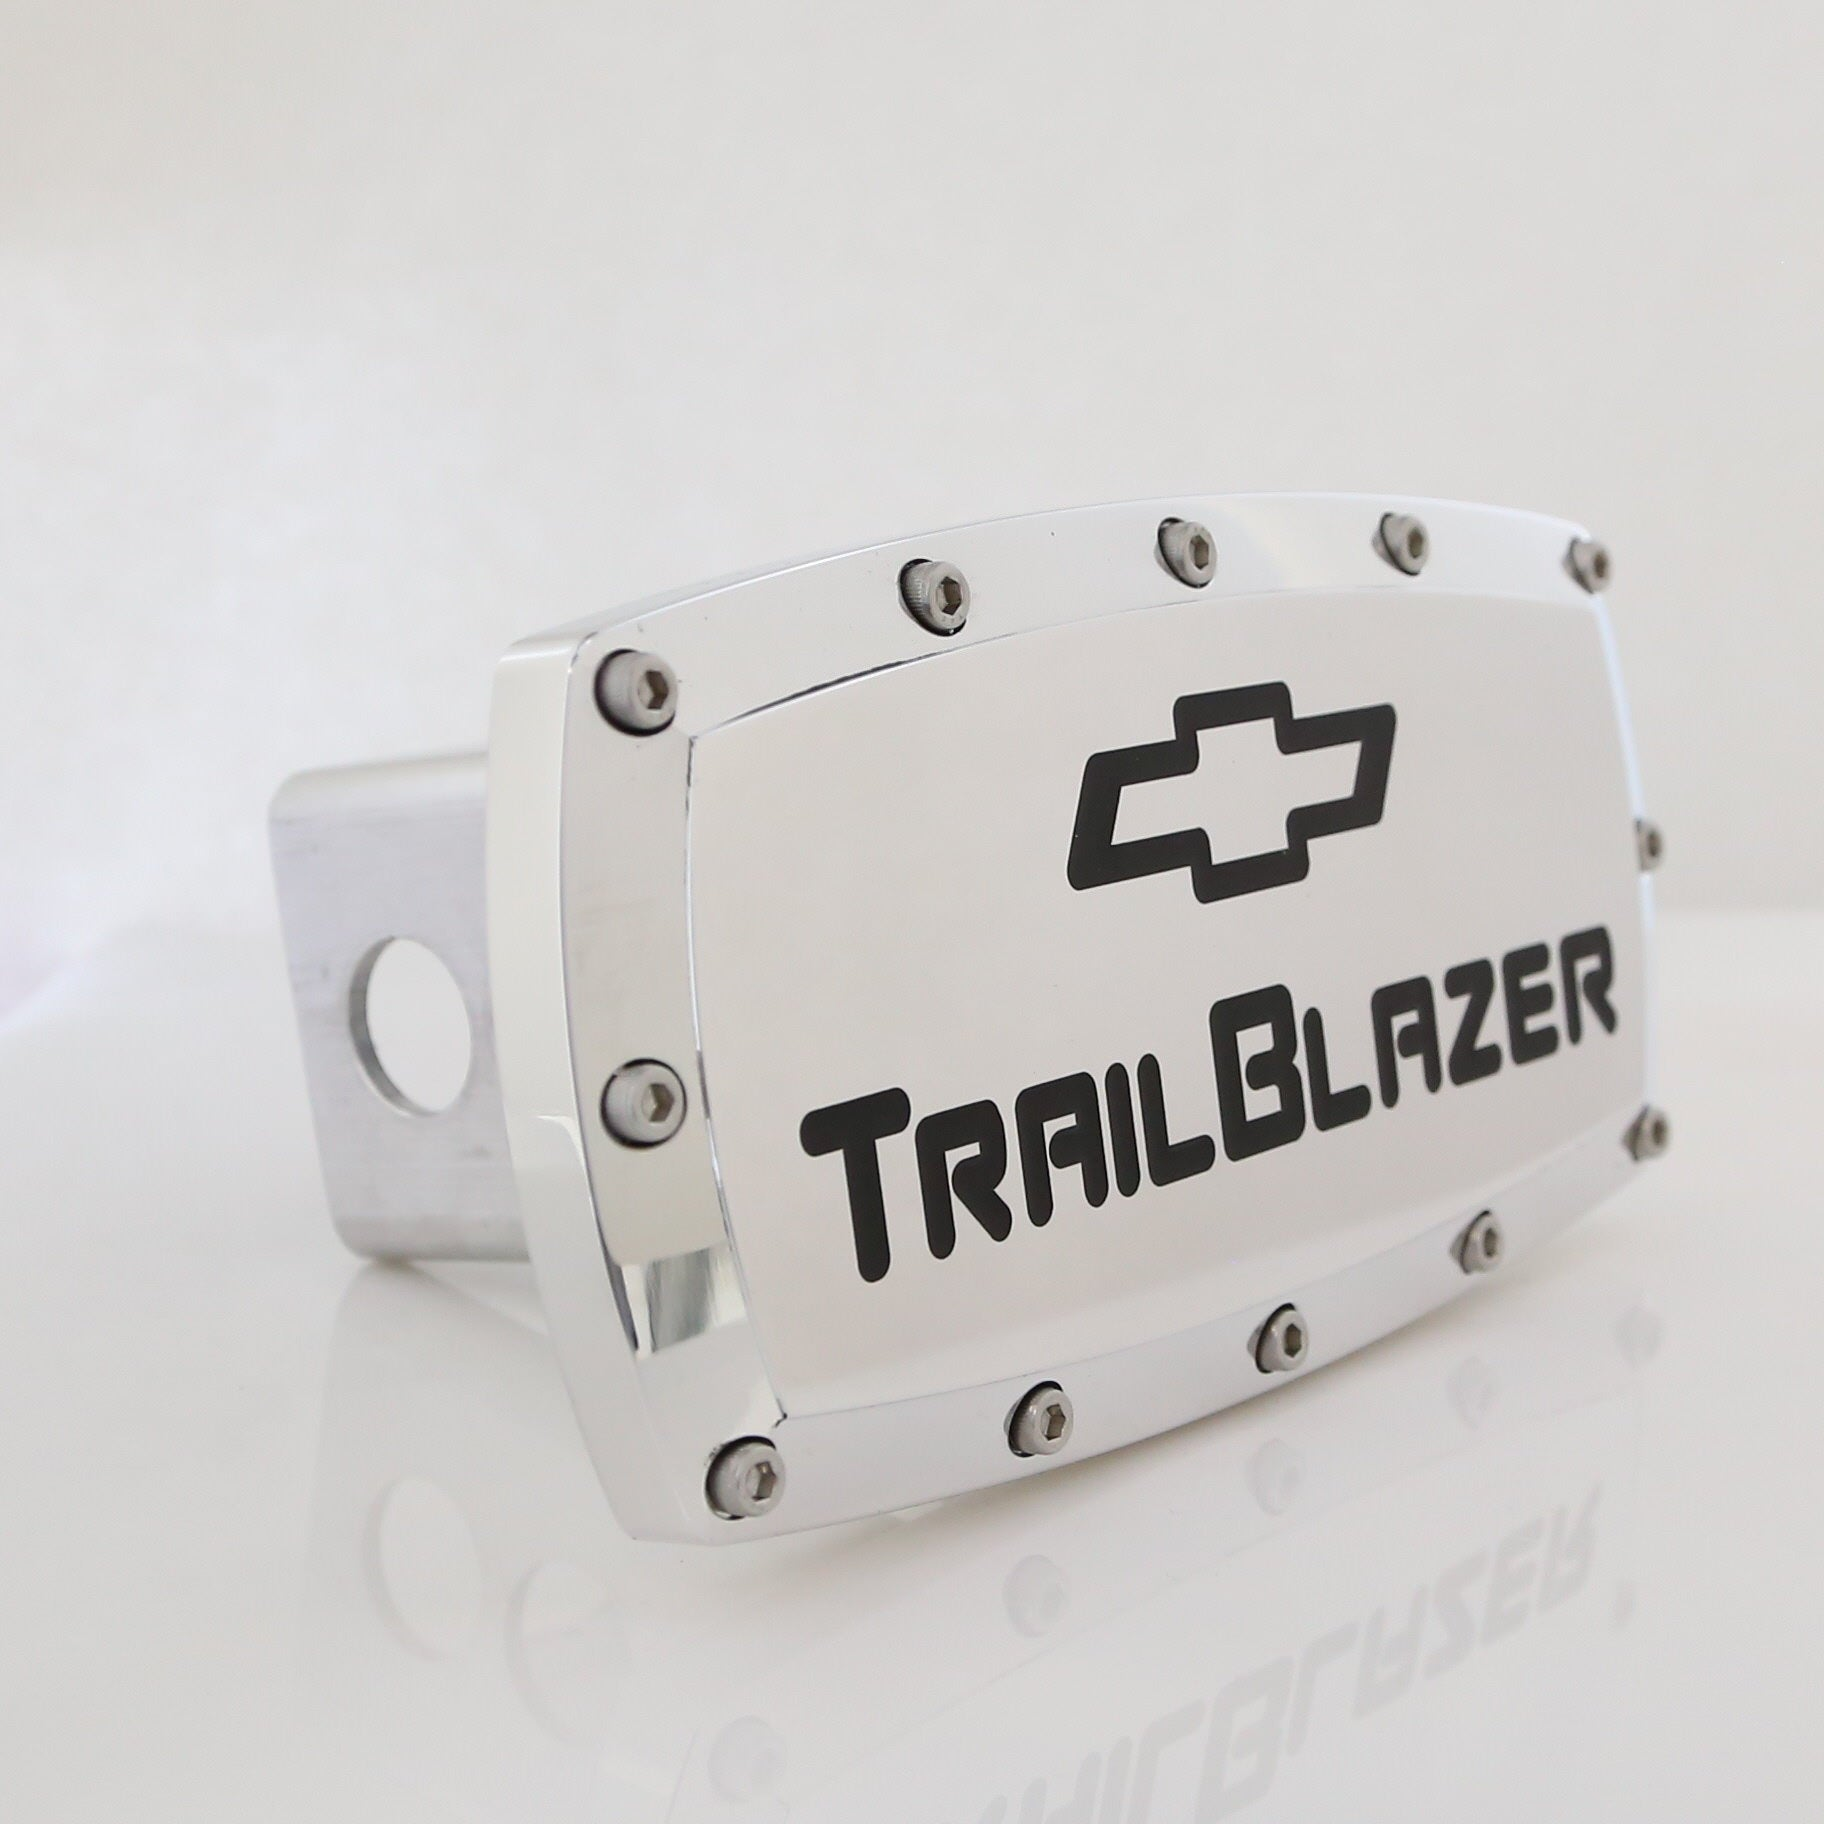 Chevy TrailBlazer Hitch Cover